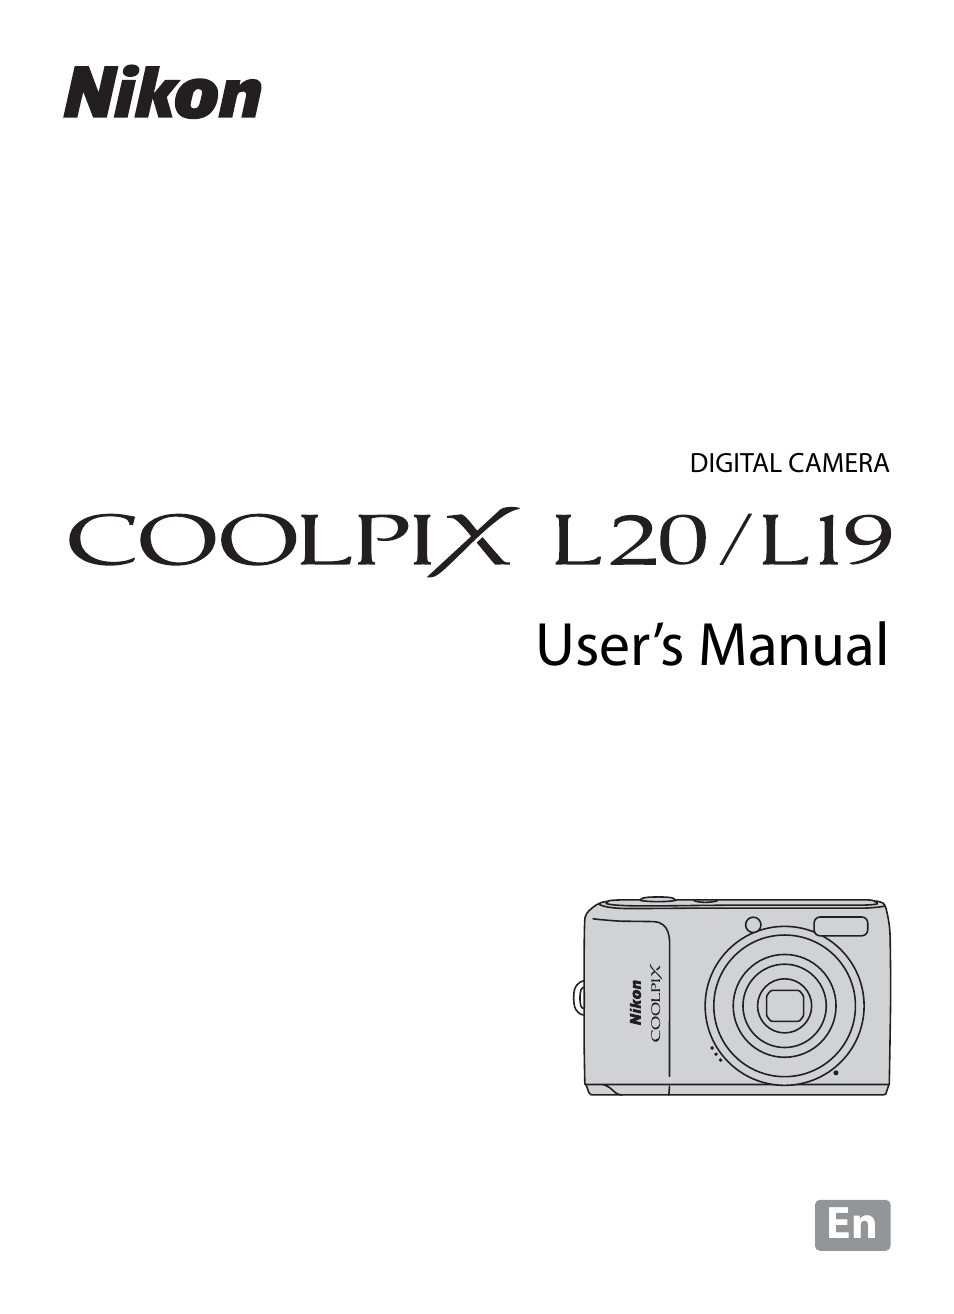 nikon coolpix l19 user manual 140 pages also for coolpix l20 nikon coolpix l20 manual download nikon coolpix l20 instruction manual